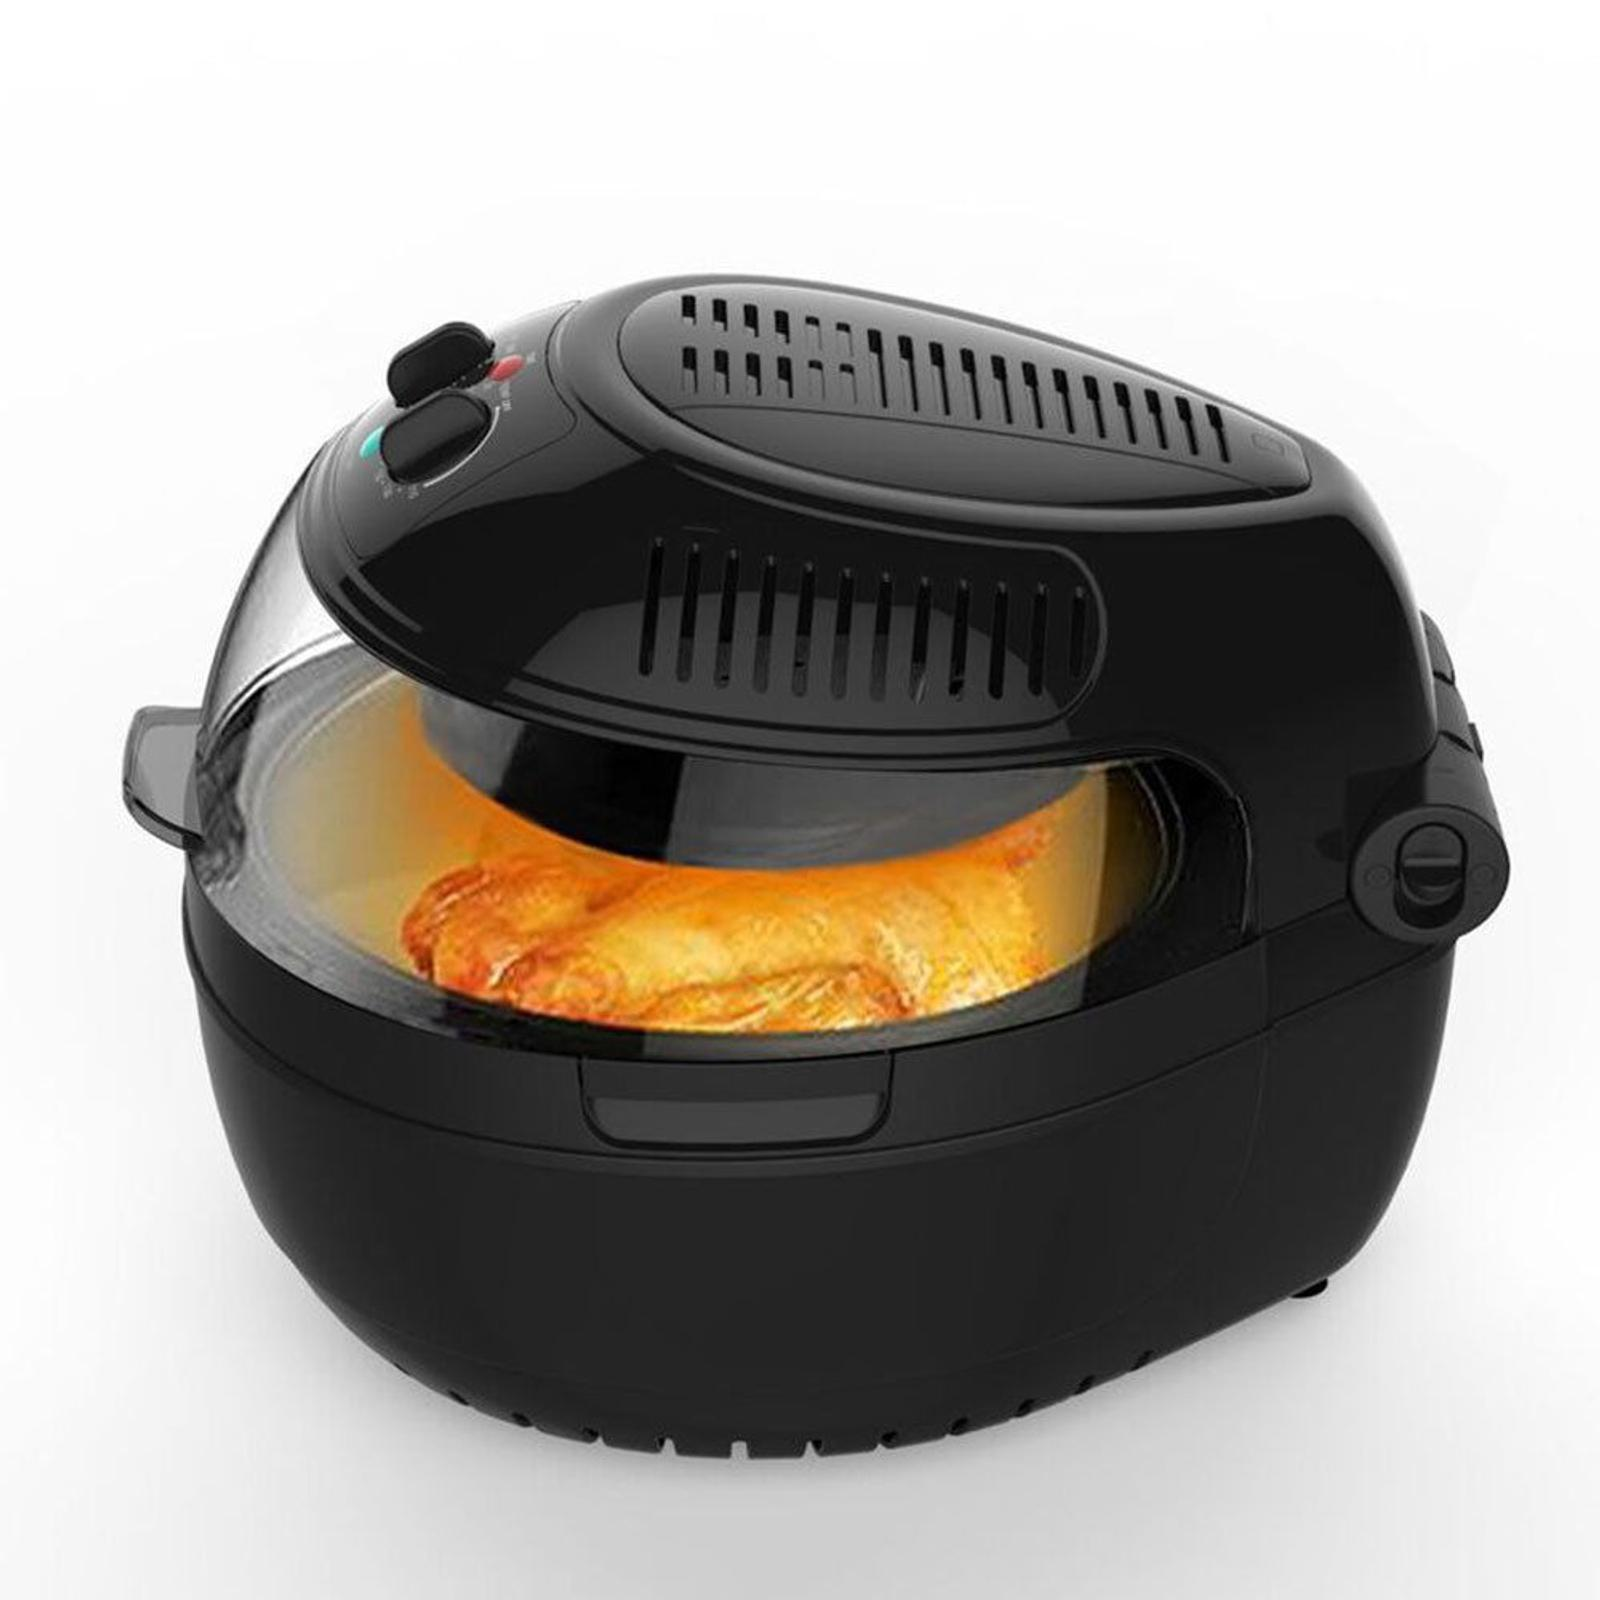 Large 10L Turbo Airfryer/IR/Food Rotation Low Fat Healthy Cooking 1300W Black